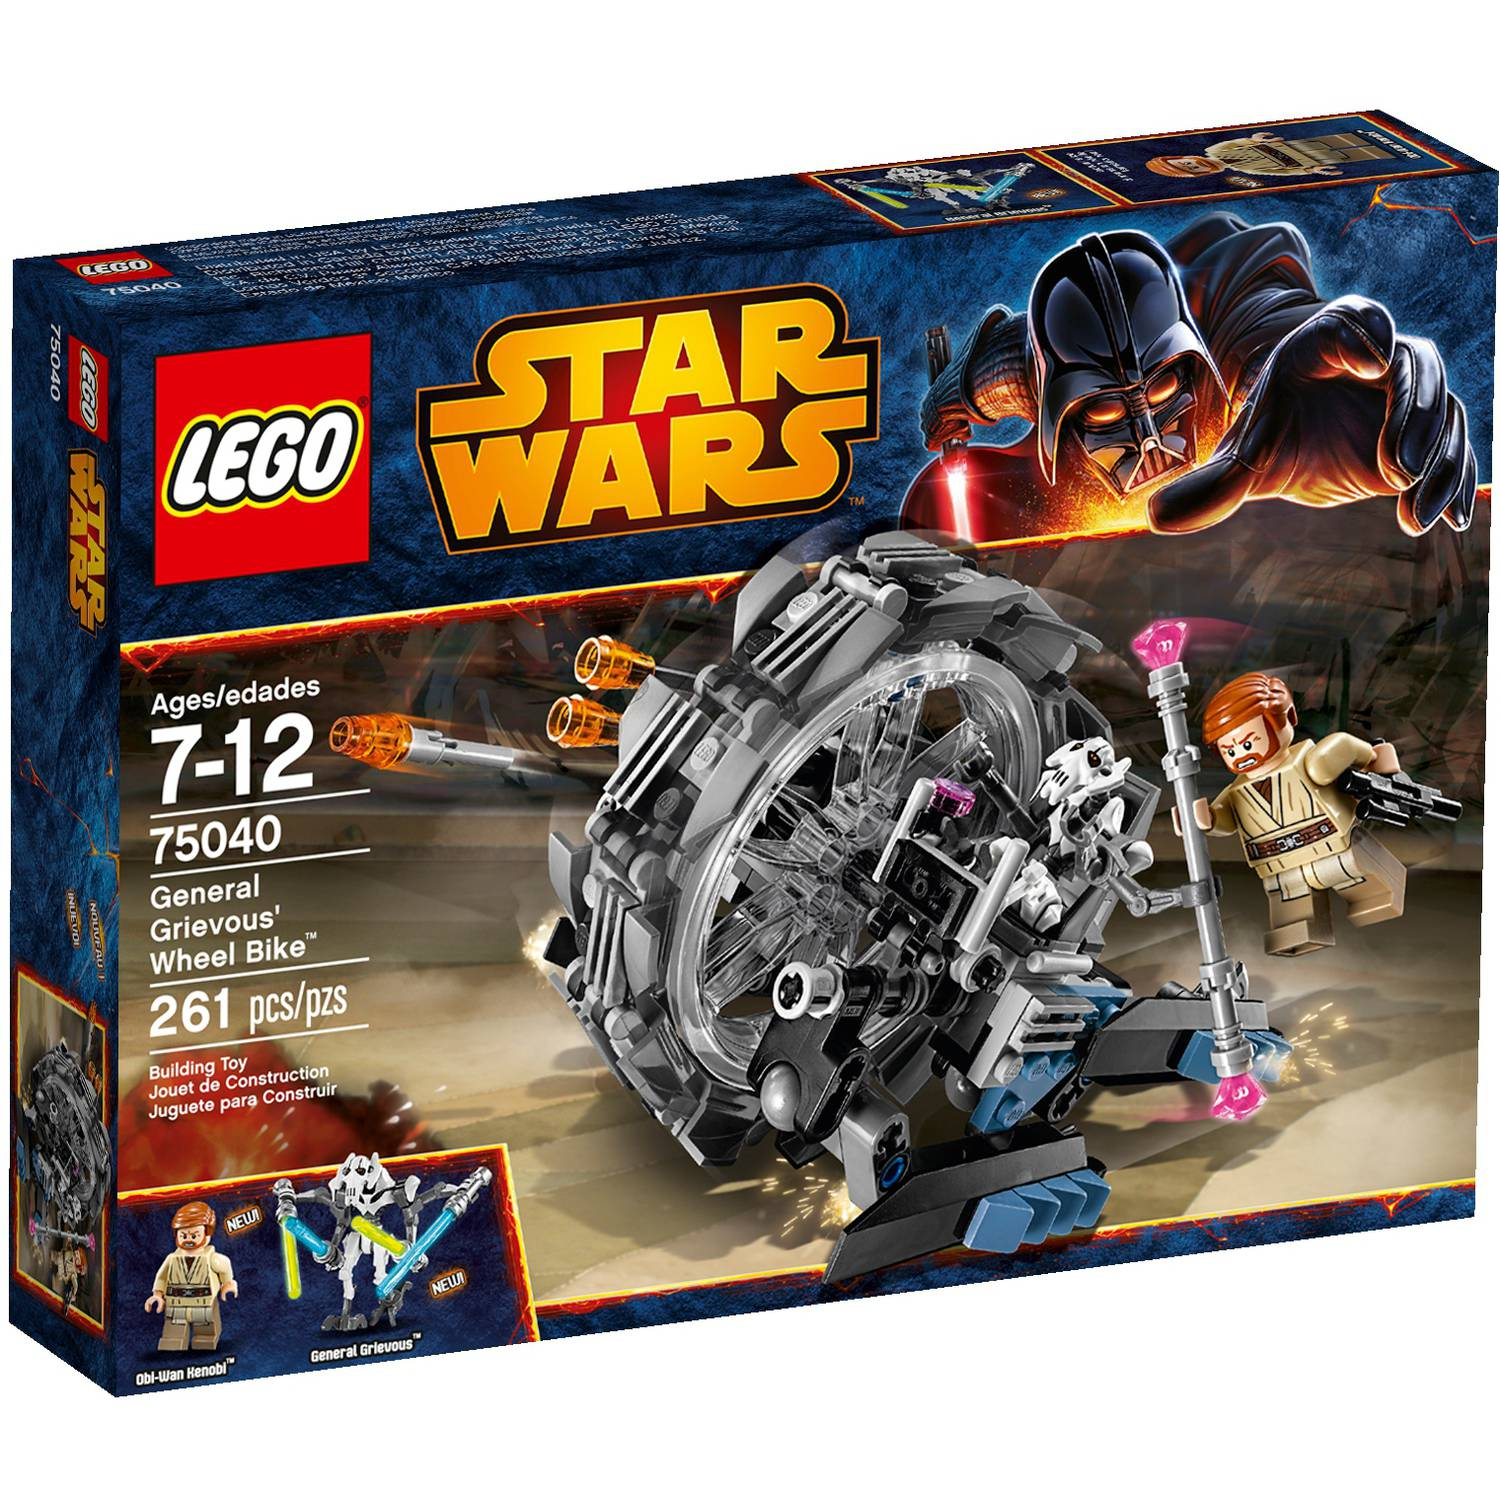 LEGO Star Wars General Grievous' Wheel Bike Play Set